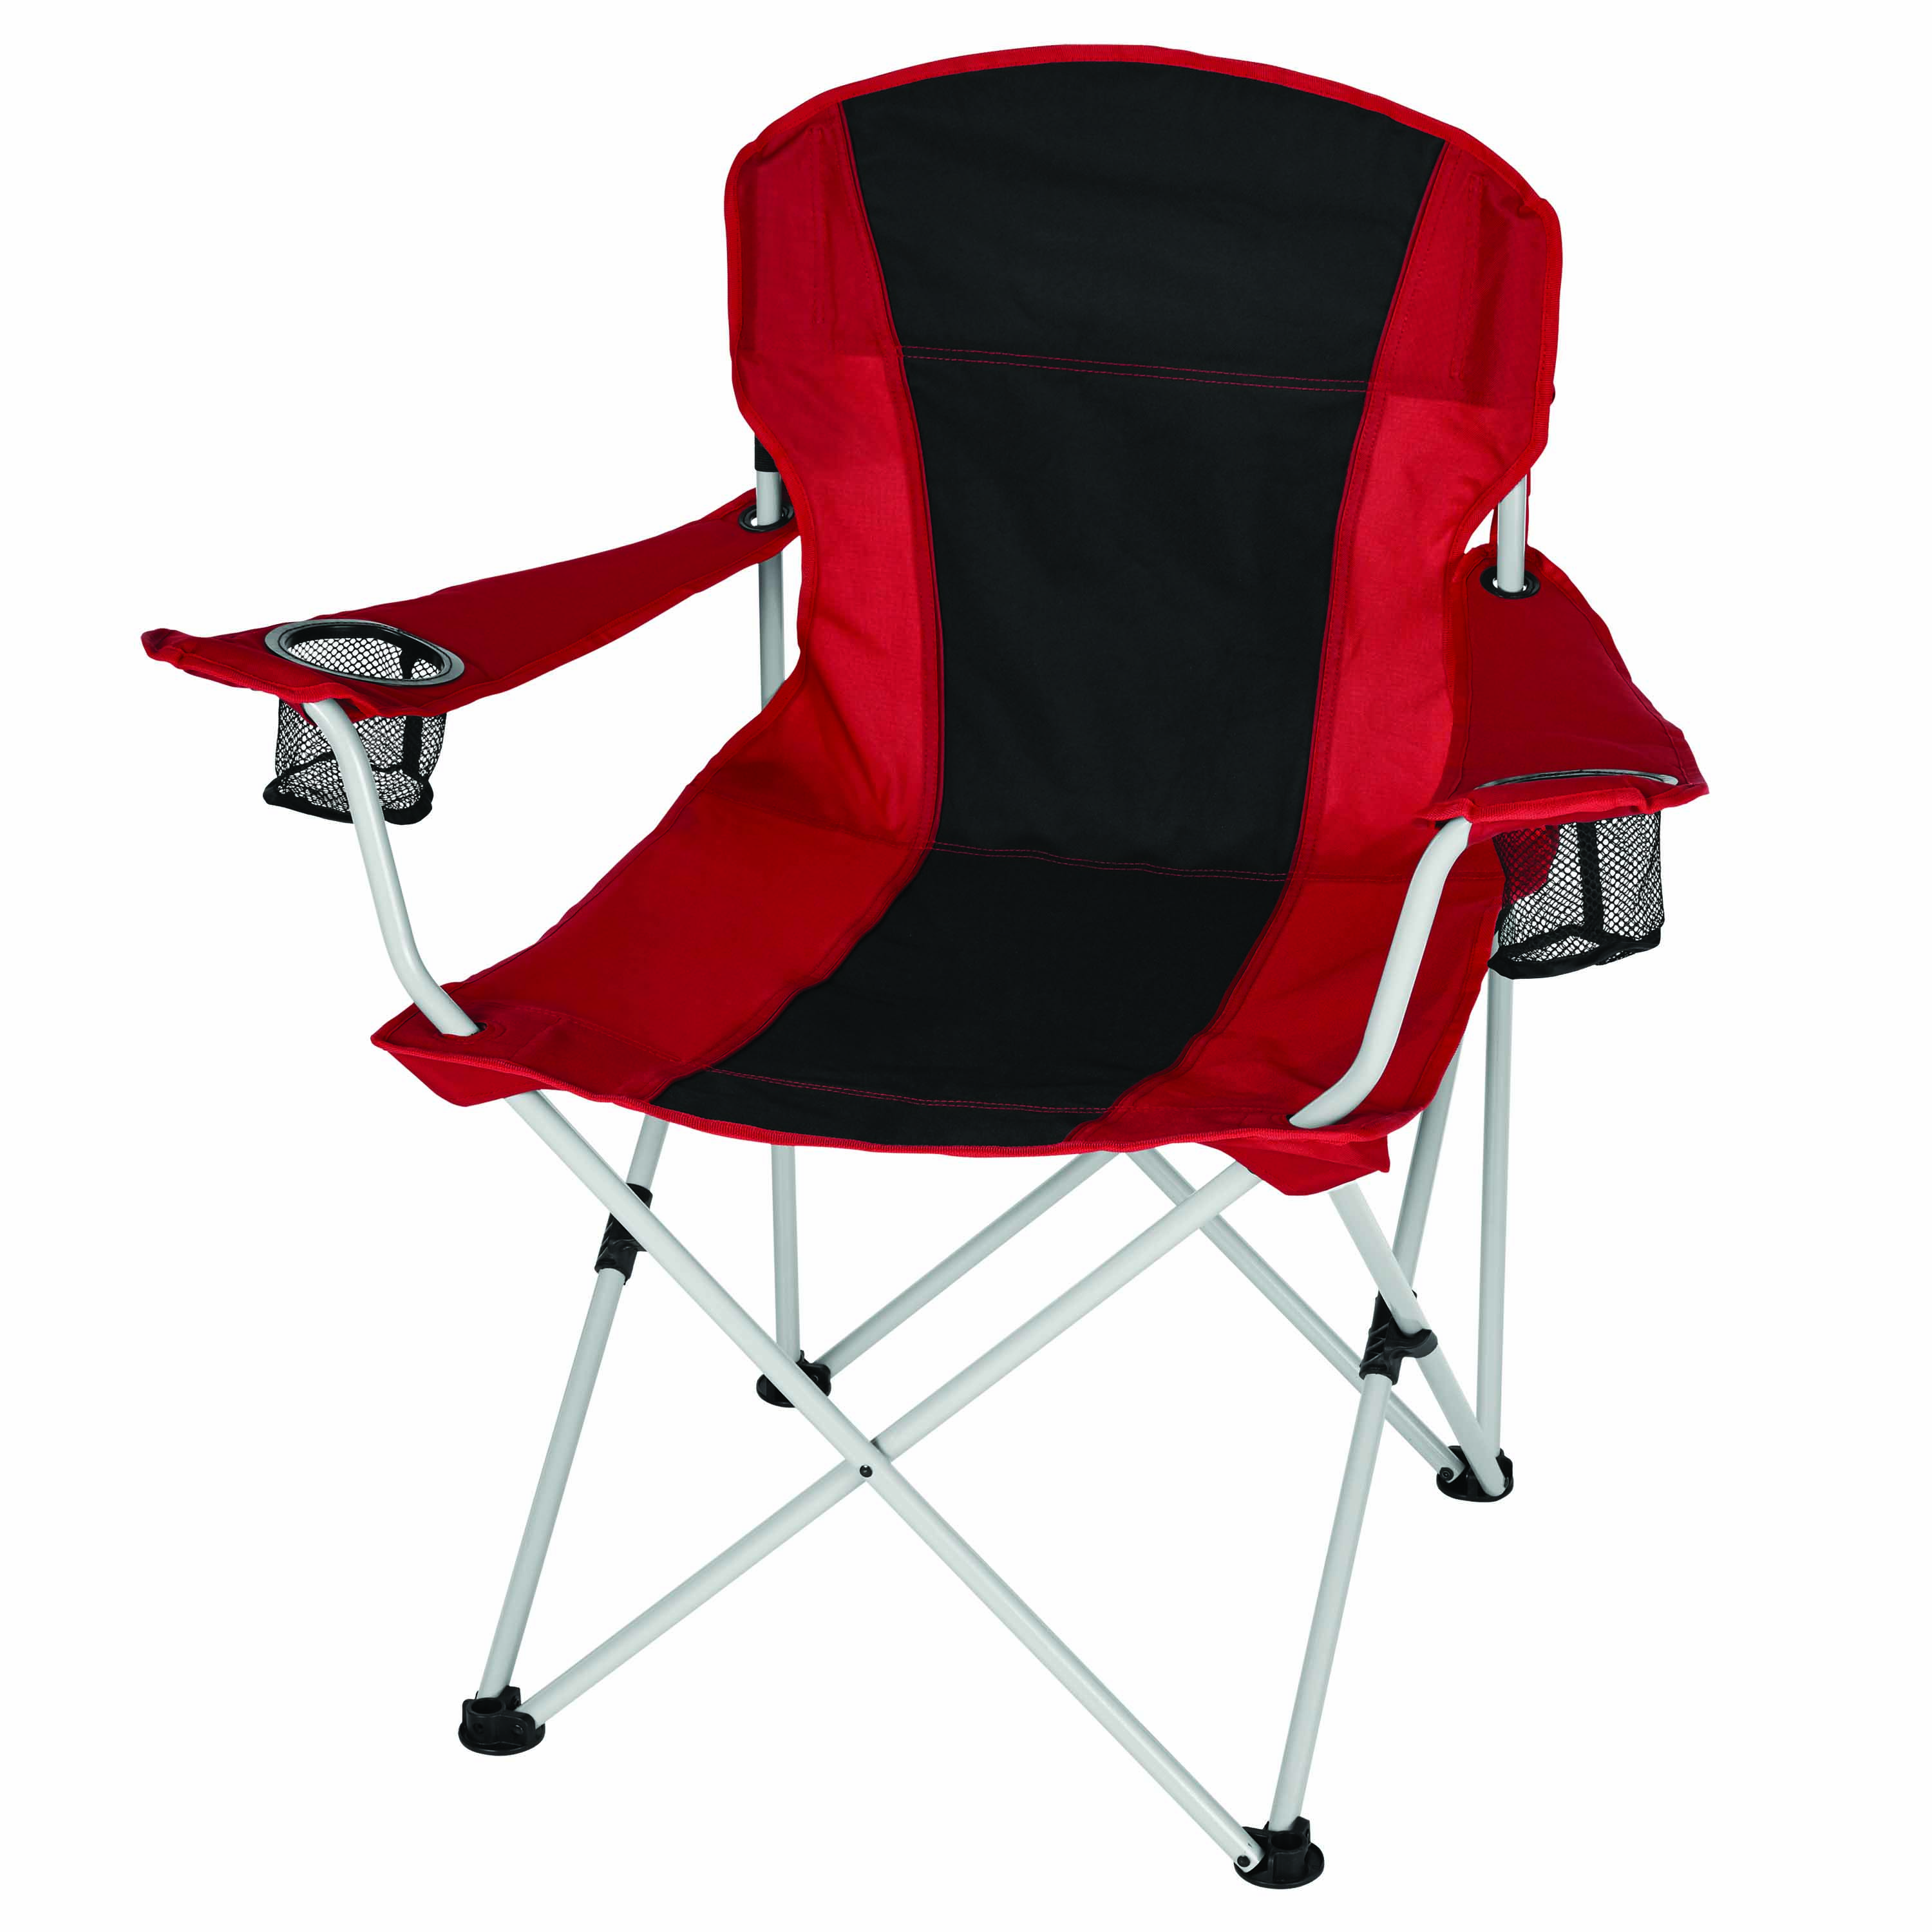 game fishing chair for sale nz covers spandex camping chairs ozark trail oversized with cup holders and quick pack strap